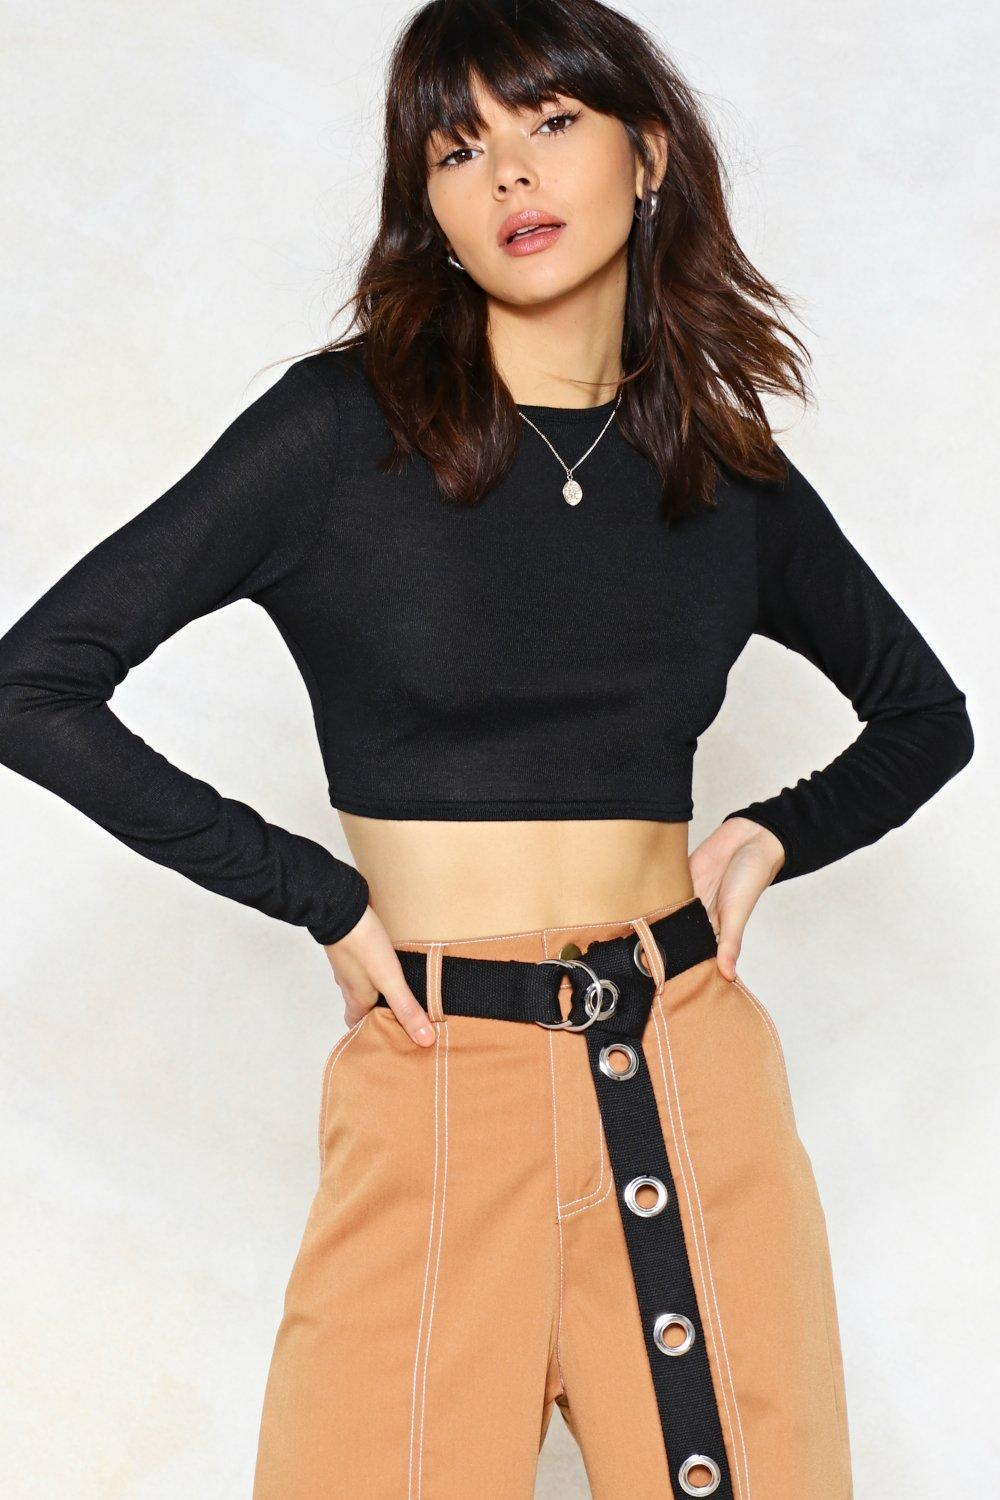 304ff86fbb767 Lyst - Nasty Gal If The Top Fits Crop Top in Black